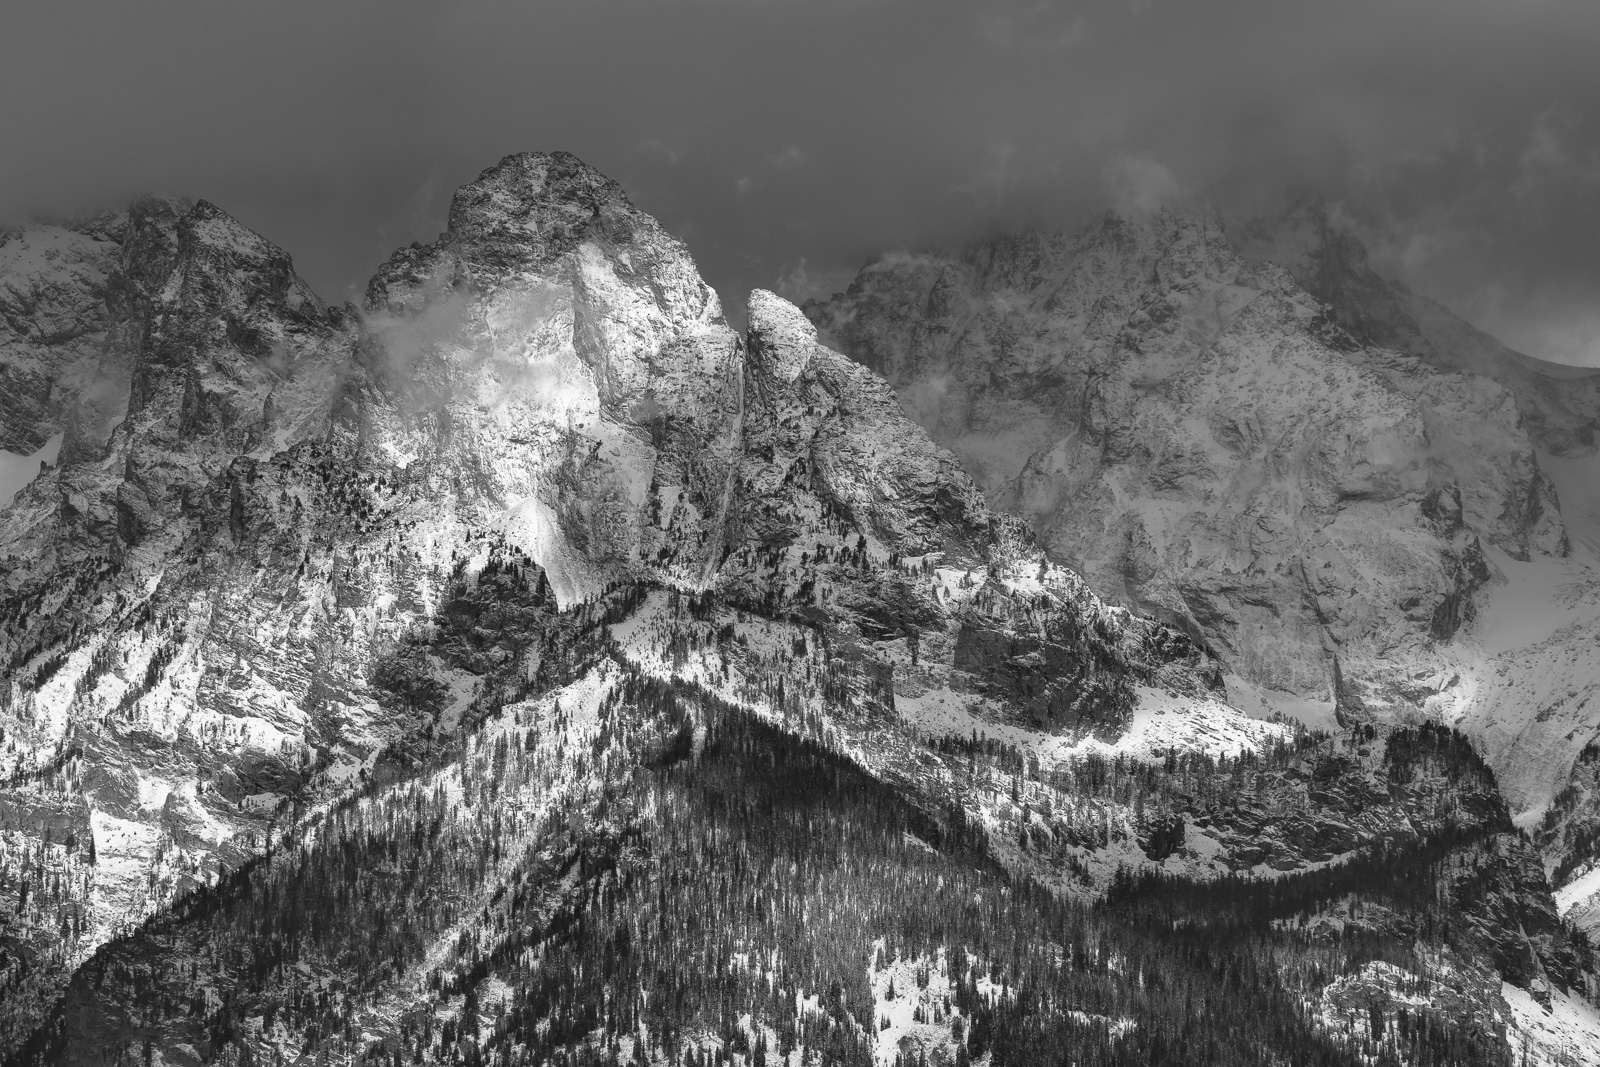 A winter storm hitting the Grand Tetons captured at sunrise.